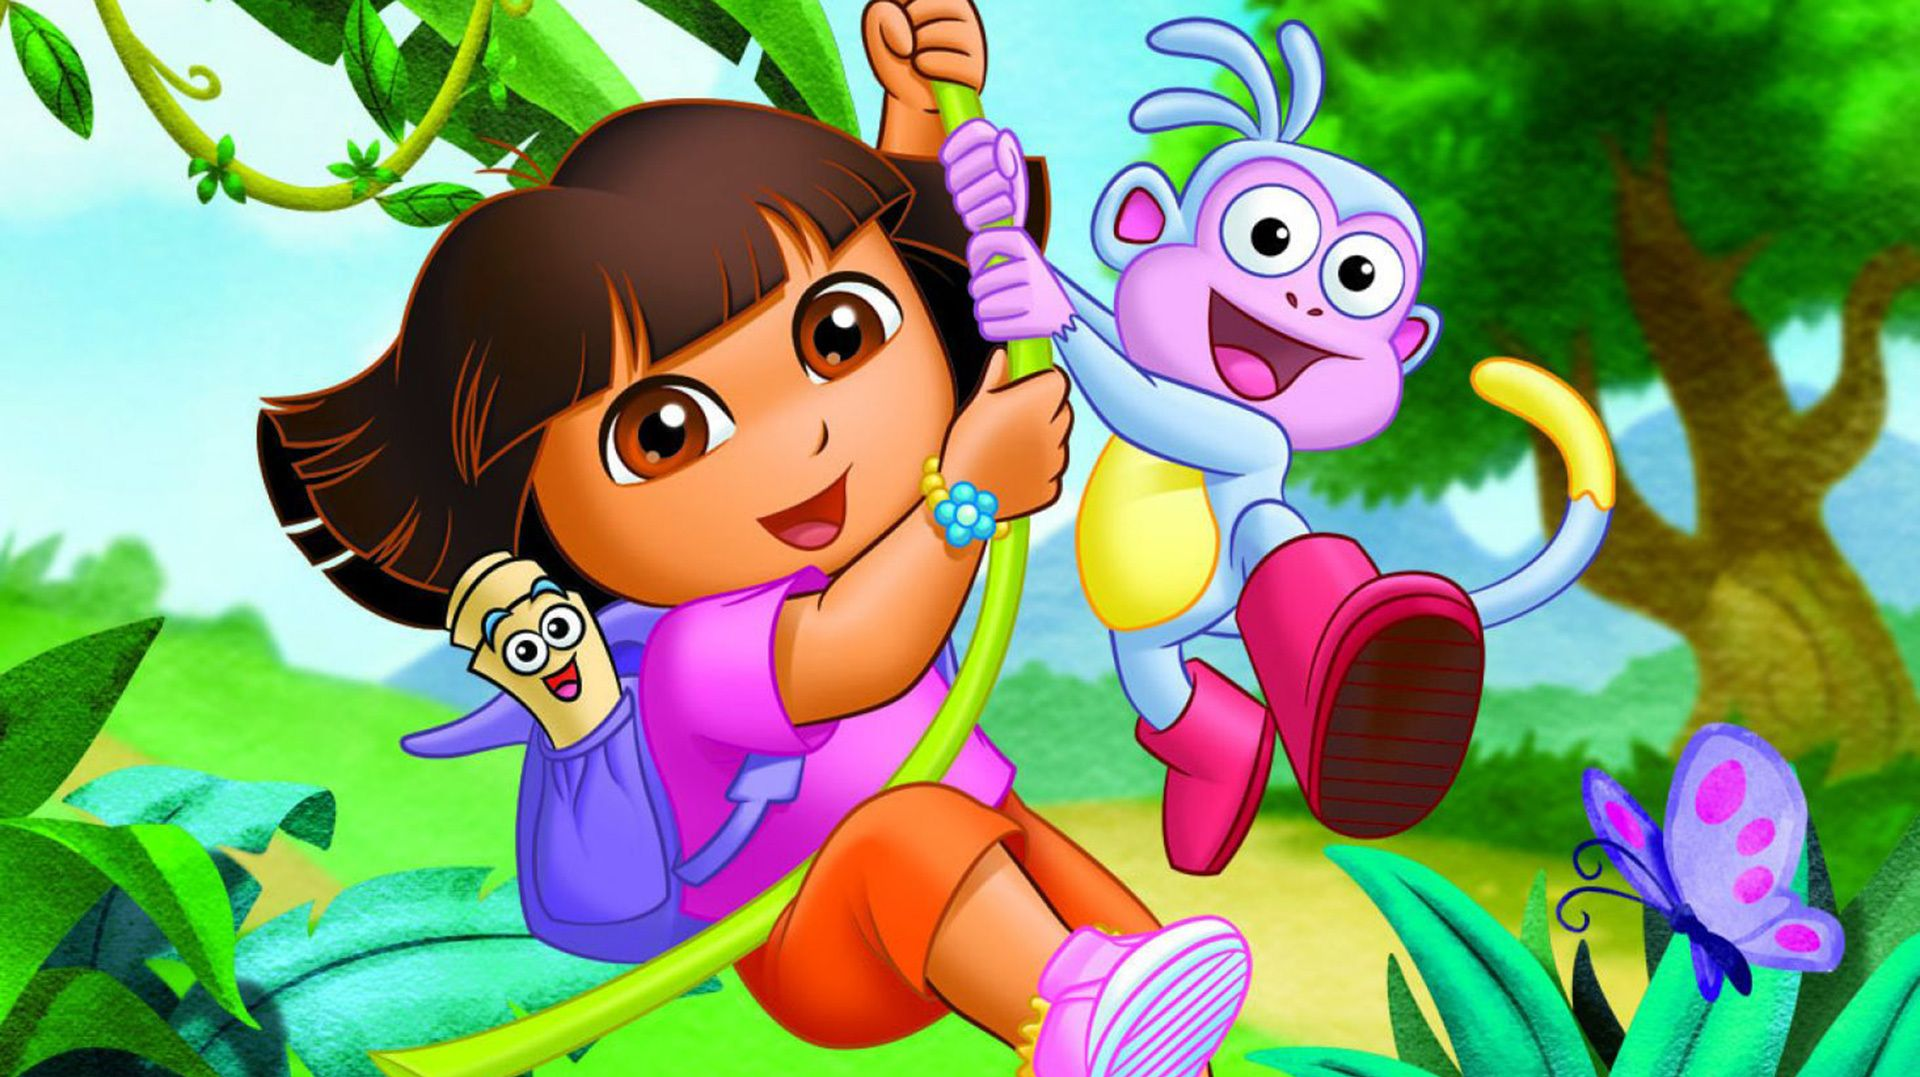 Uncategorized Dora Pictures dora the explorer movie in works with michael bay collider